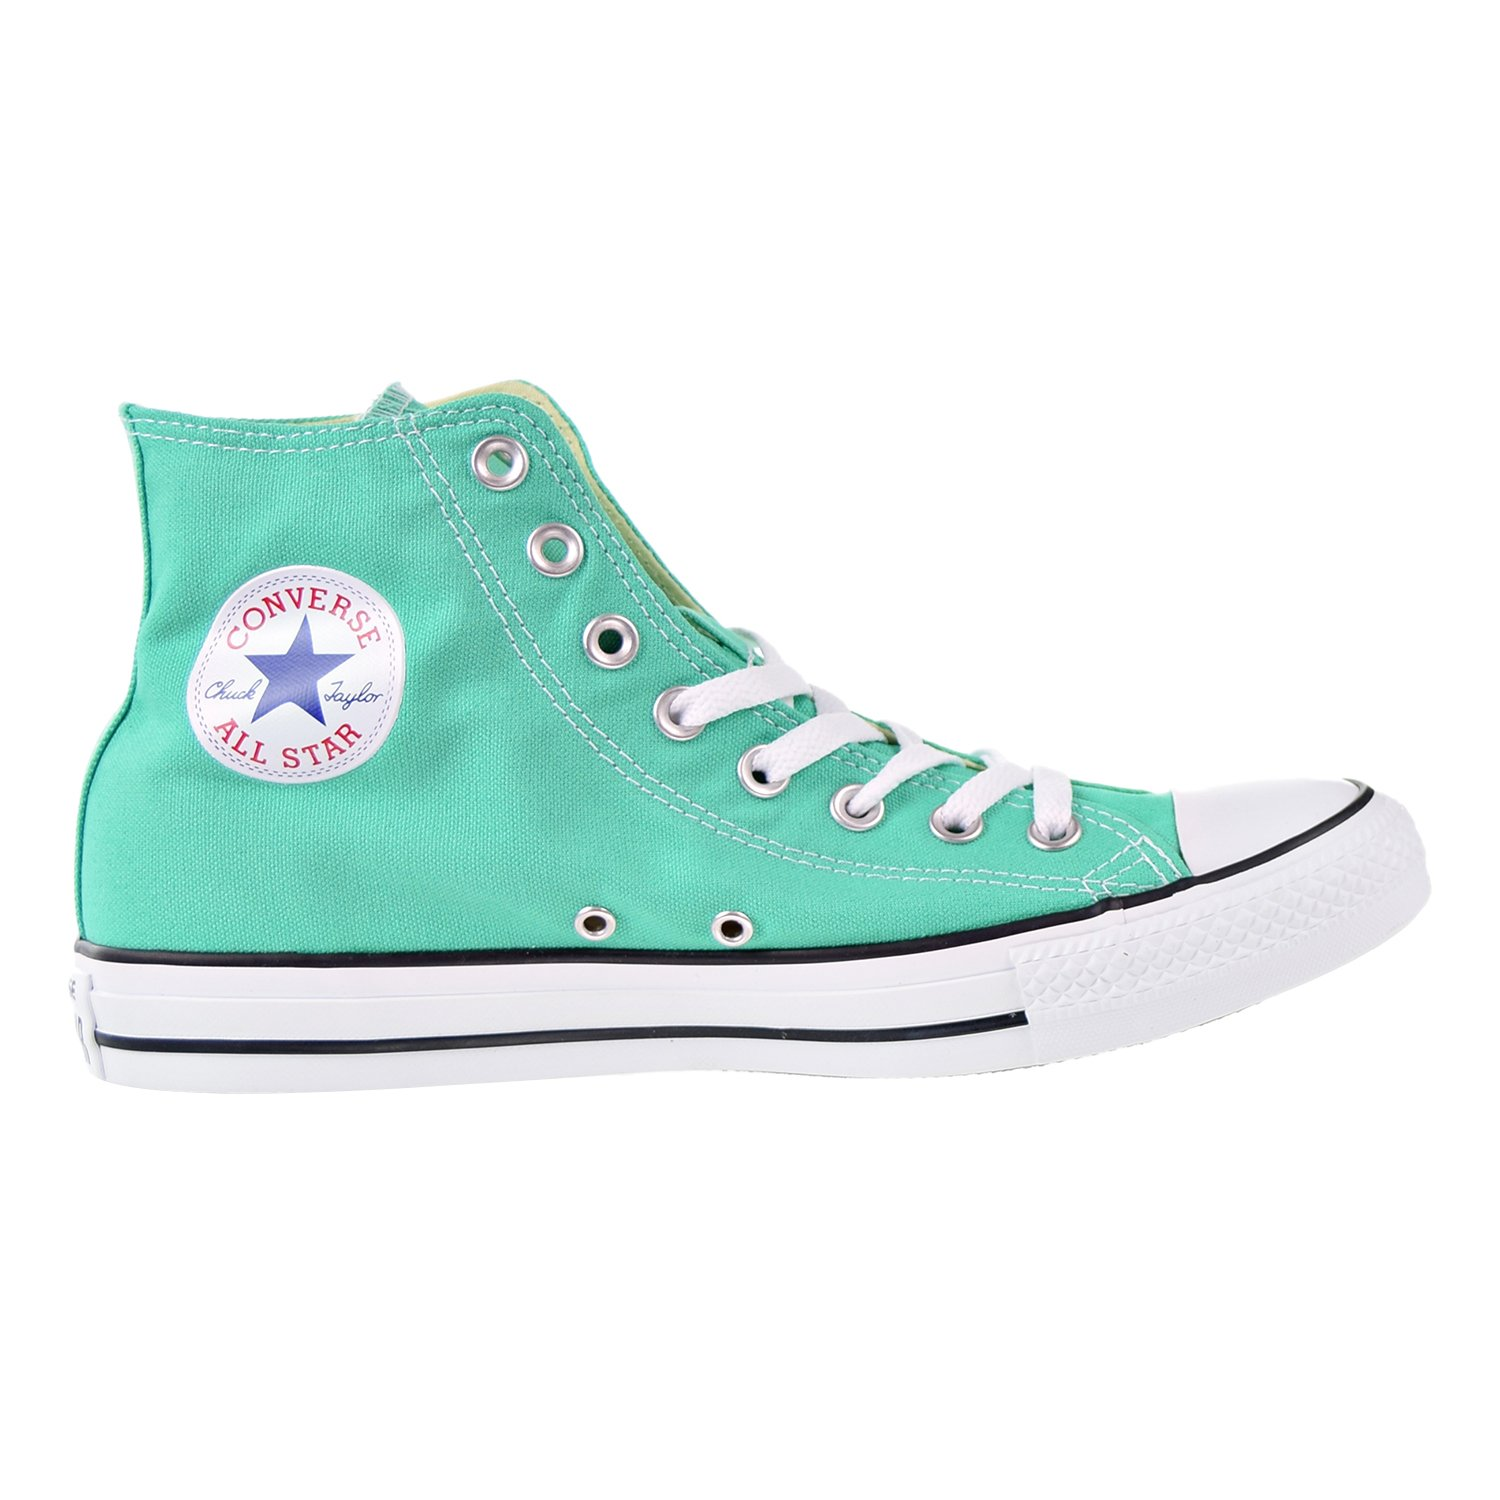 Converse Unisex Chuck Taylor All-Star High-Top Casual Sneakers in Classic Style and Color and Durable Canvas Uppers B01HSH8TR8 12 B(M) US Women / 10 D(M) US Men|Menta